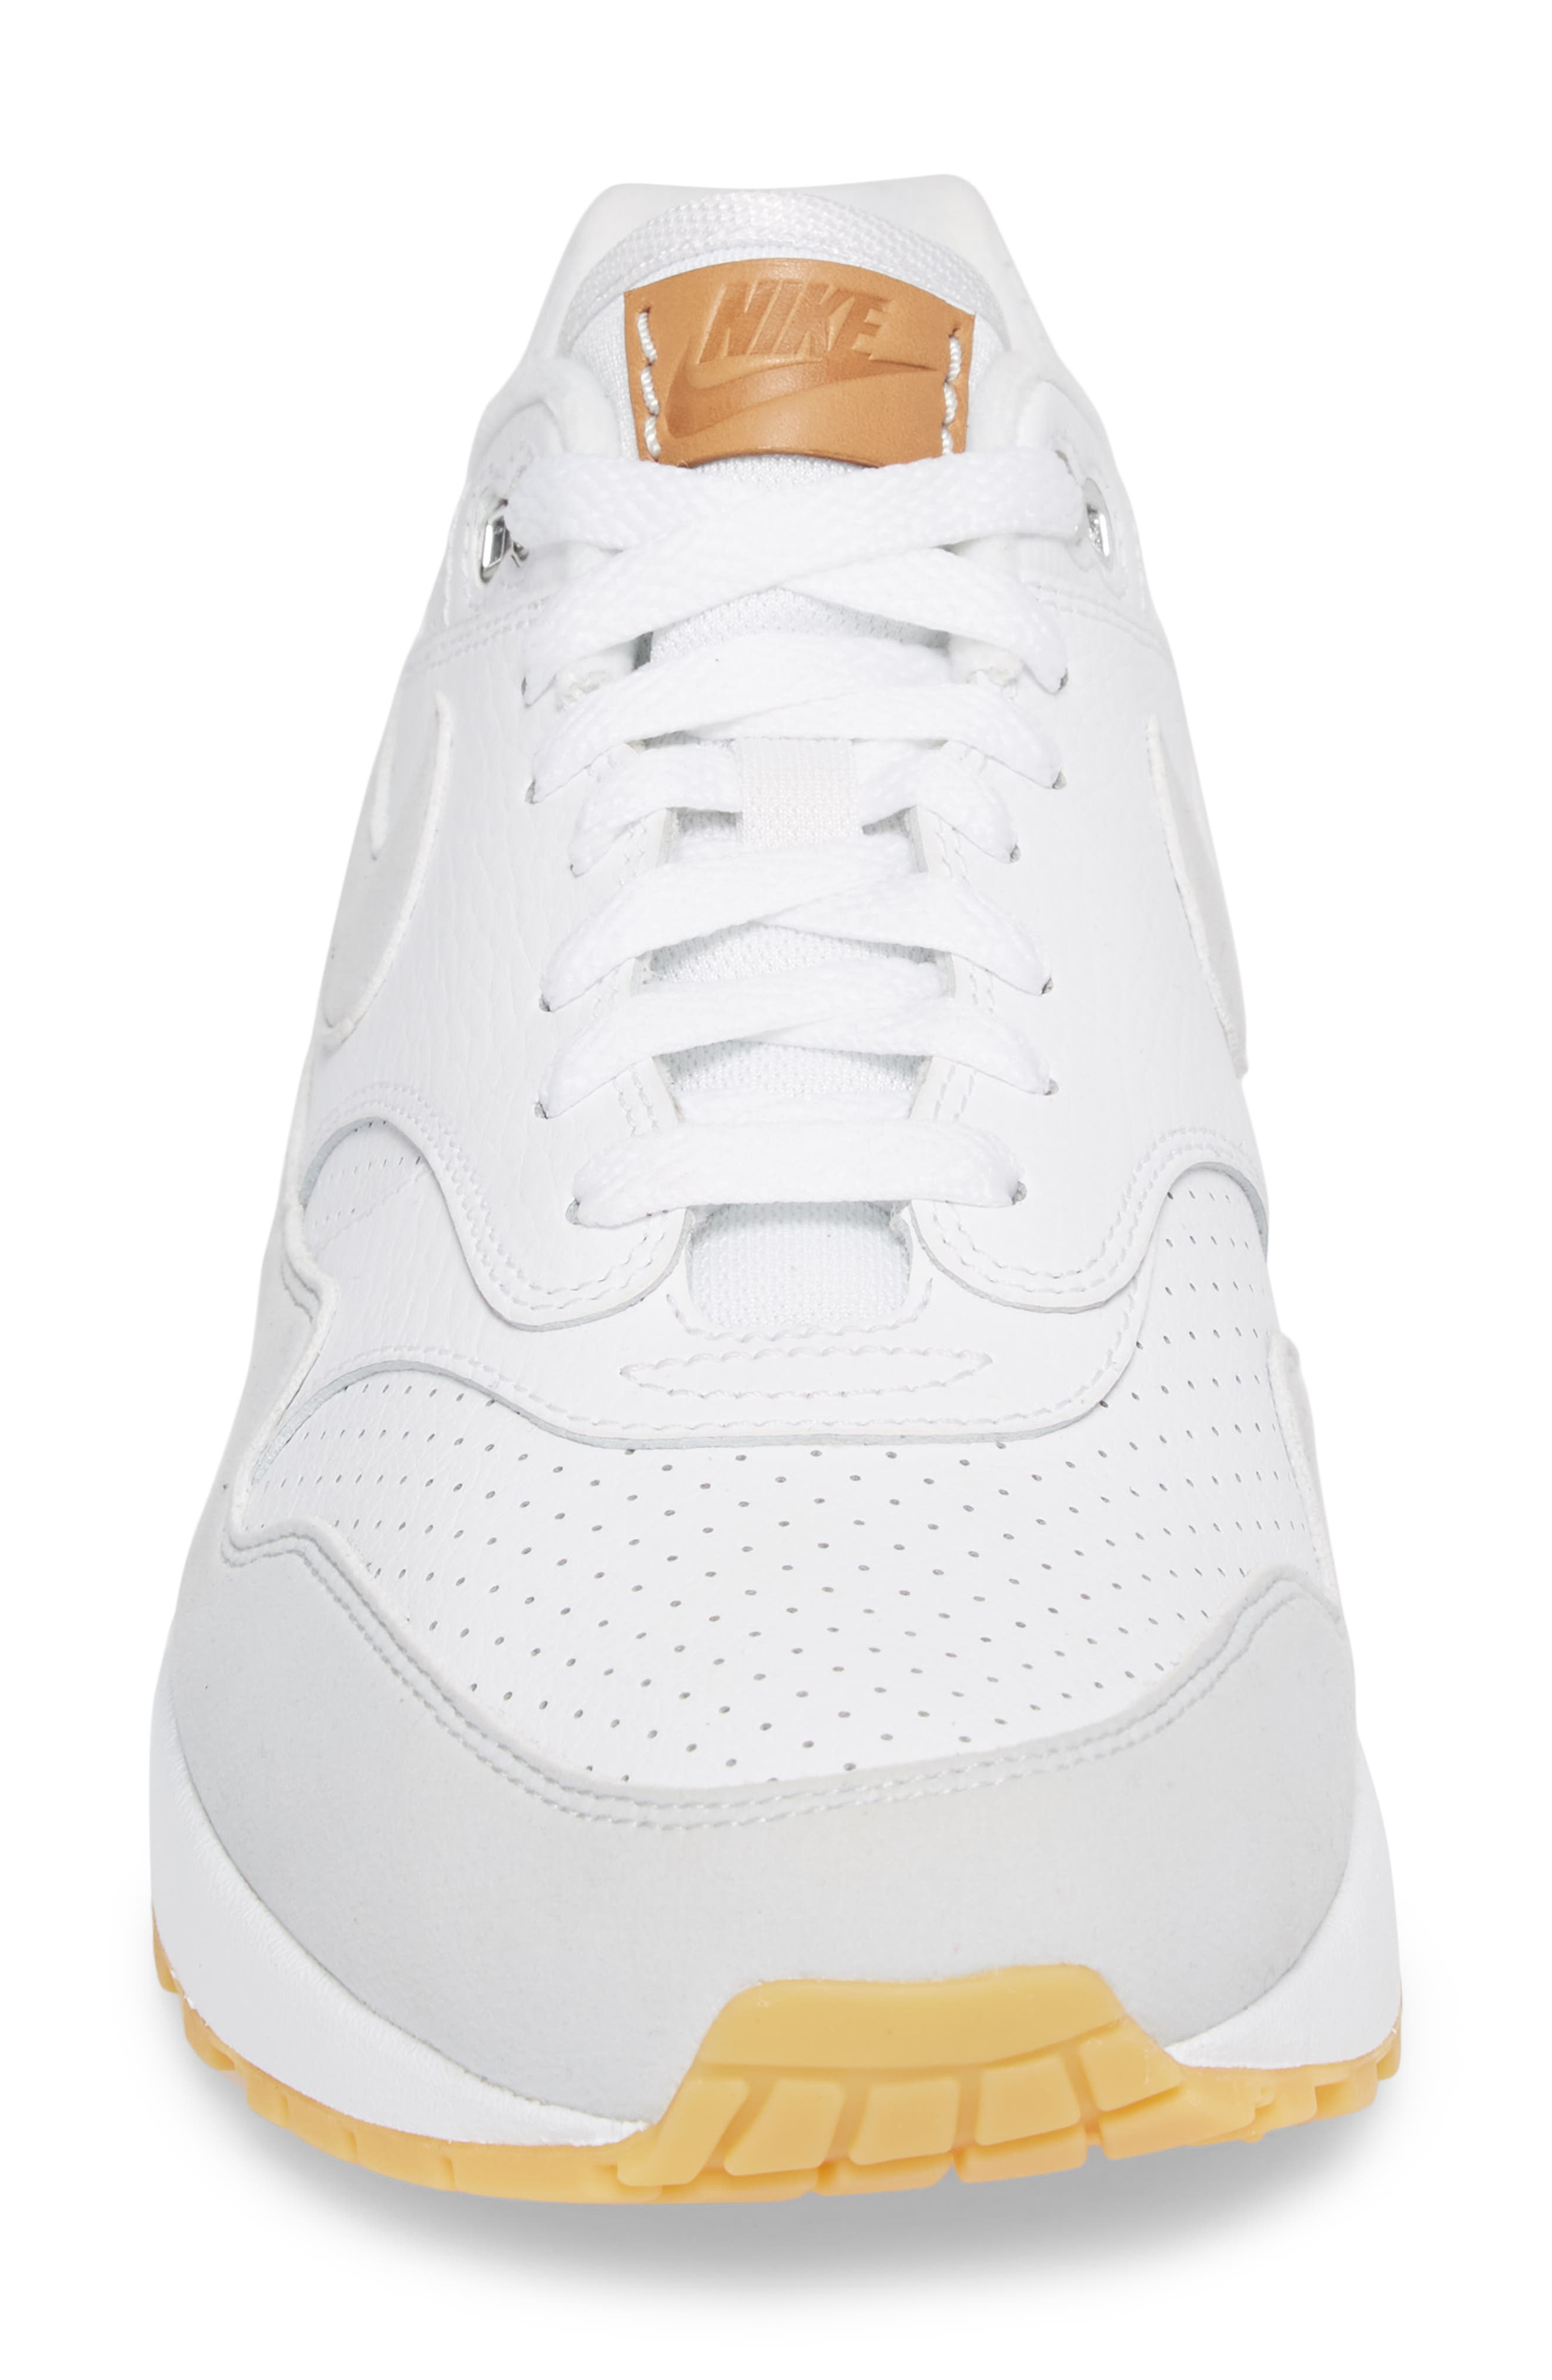 Air Max 1 Sneaker,                             Alternate thumbnail 4, color,                             WHITE/ PURE PLATINUM/ YELLOW